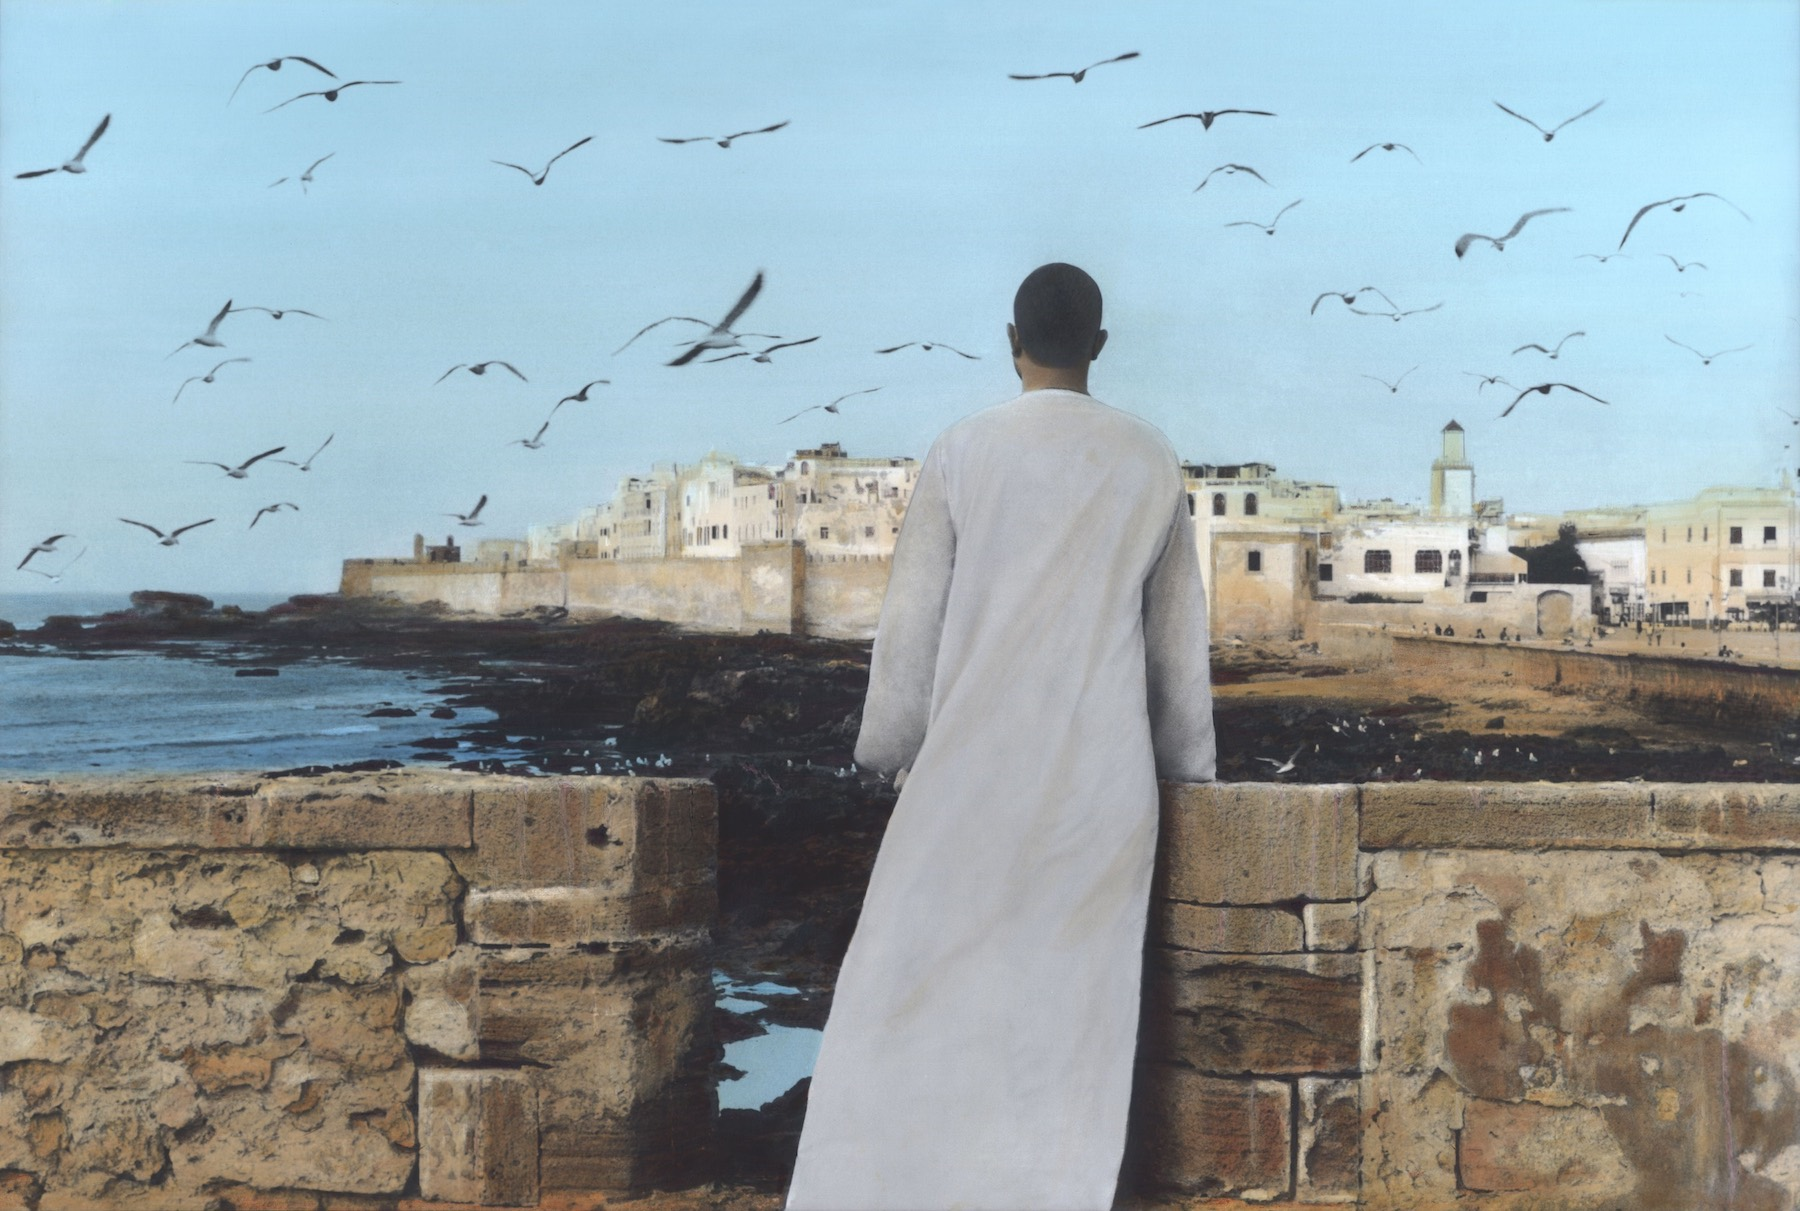 Youssef Nabil - Self-portrait, Essaouira 2011 Hand colored gelatin silver print Courtesy of the Artist and Nathalie Obadia Gallery, Paris/ Brussels